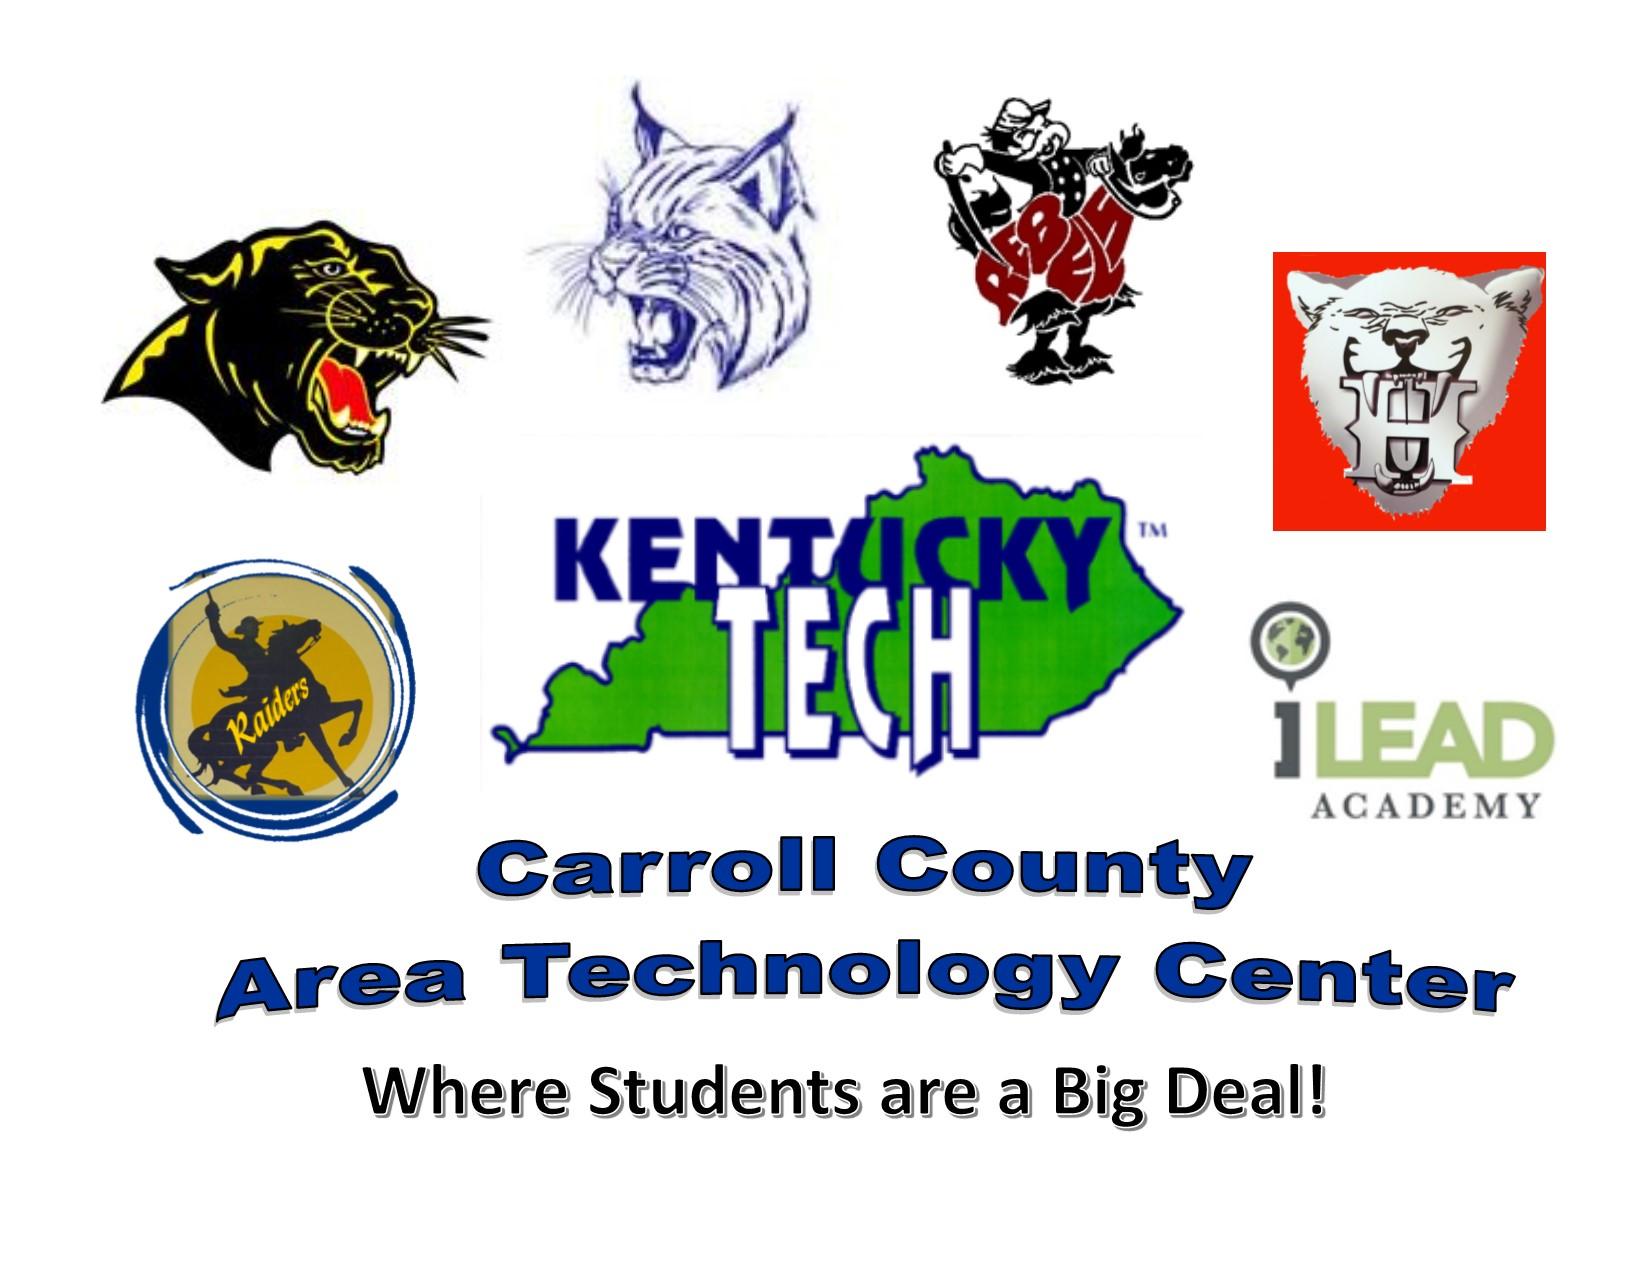 Carroll County Area Technology Center